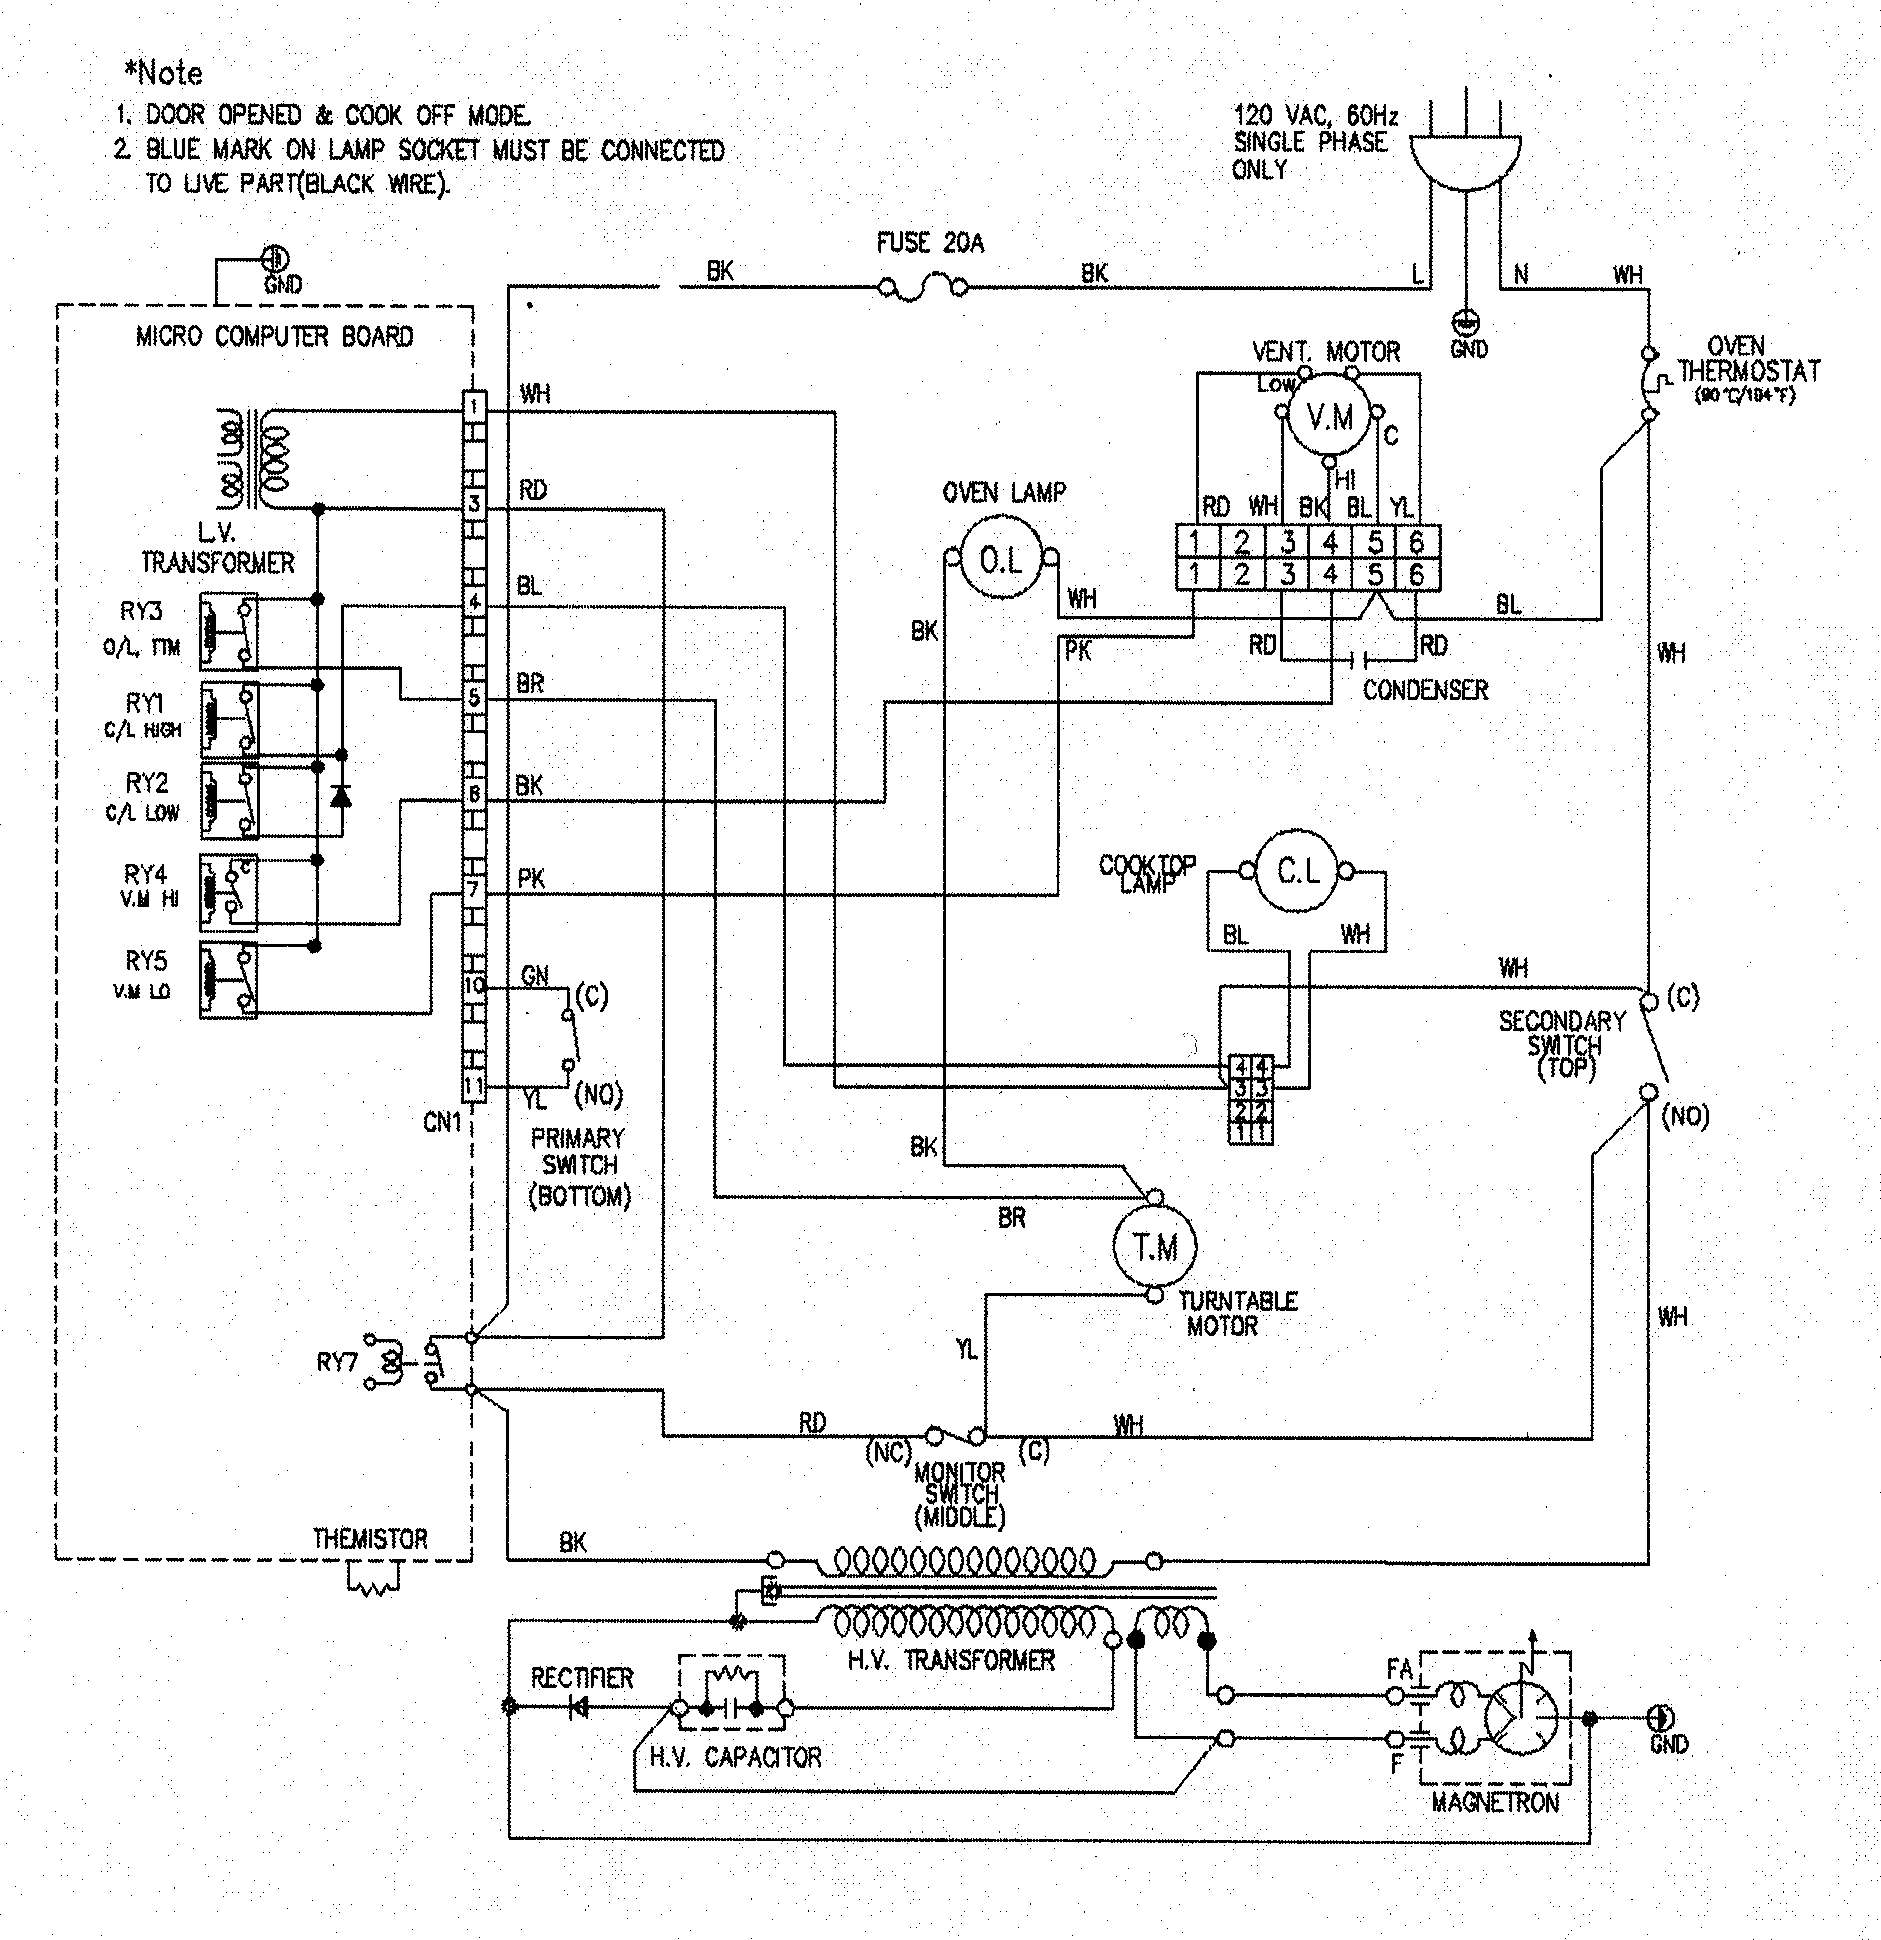 hight resolution of jbp24 ge oven wiring schematic wiring diagrams konsult ge schematic diagrams